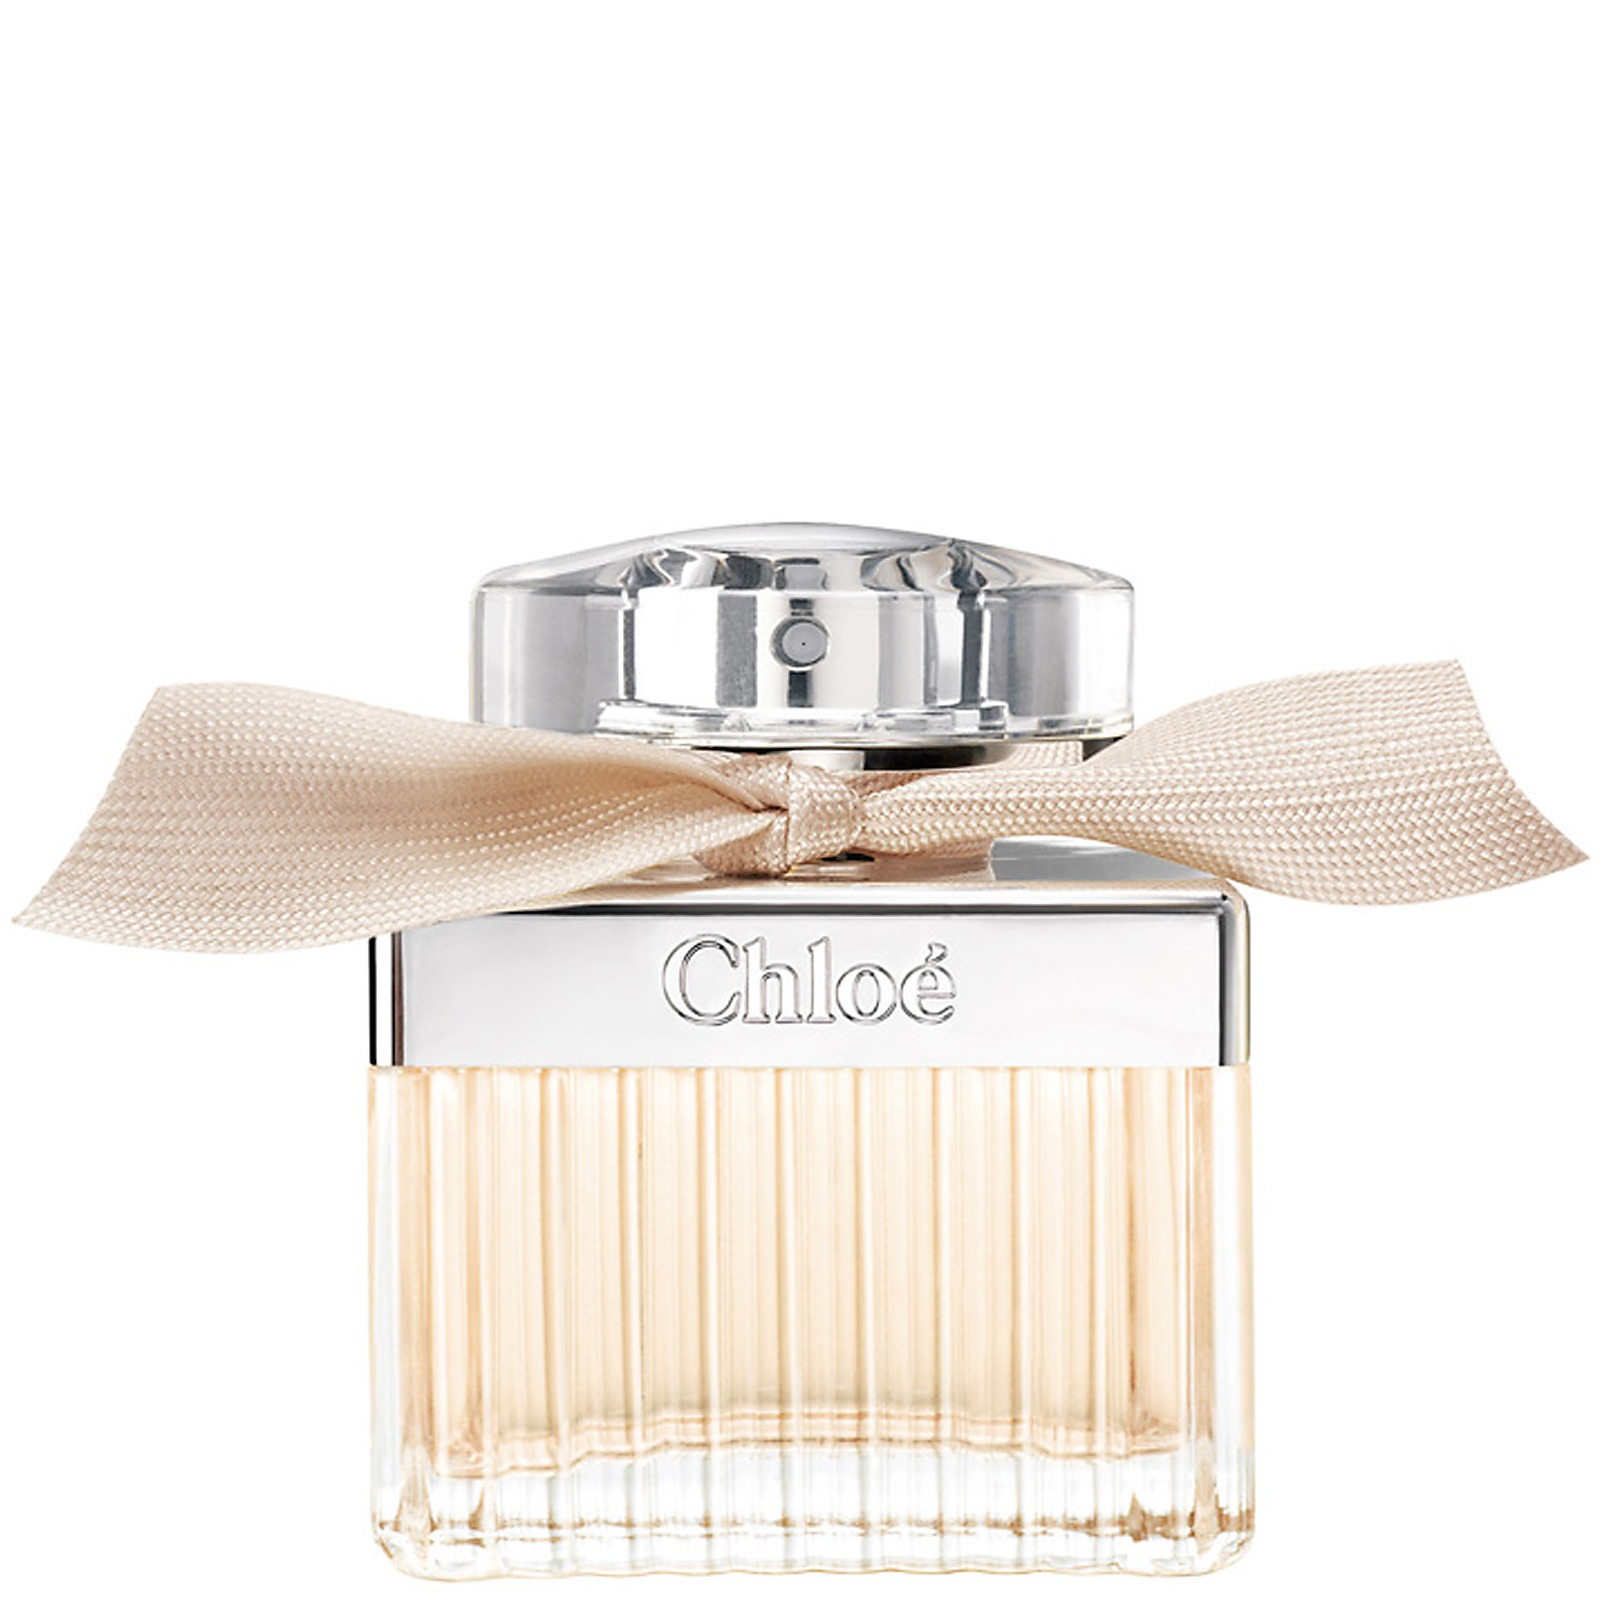 Chloé For Her Eau de Parfum Spray 50ml